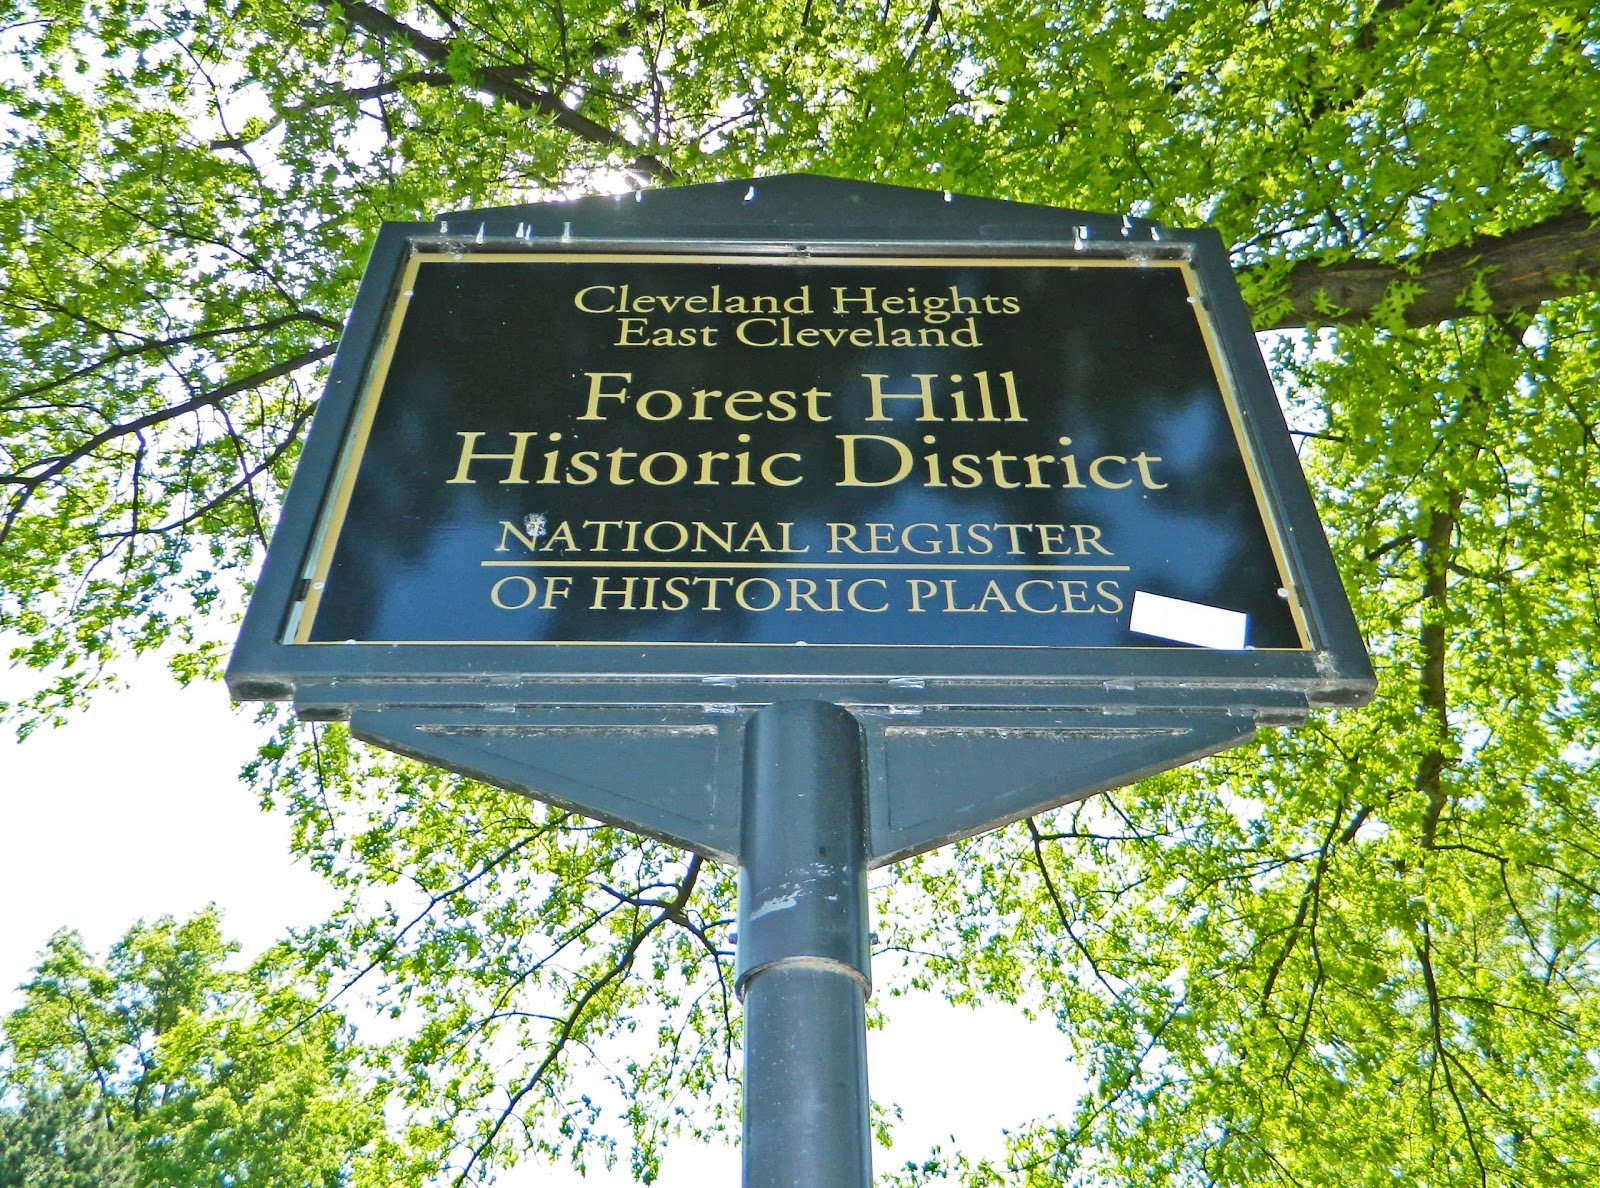 2013051501 Cleveland Heights Forest Hill sign.jpg